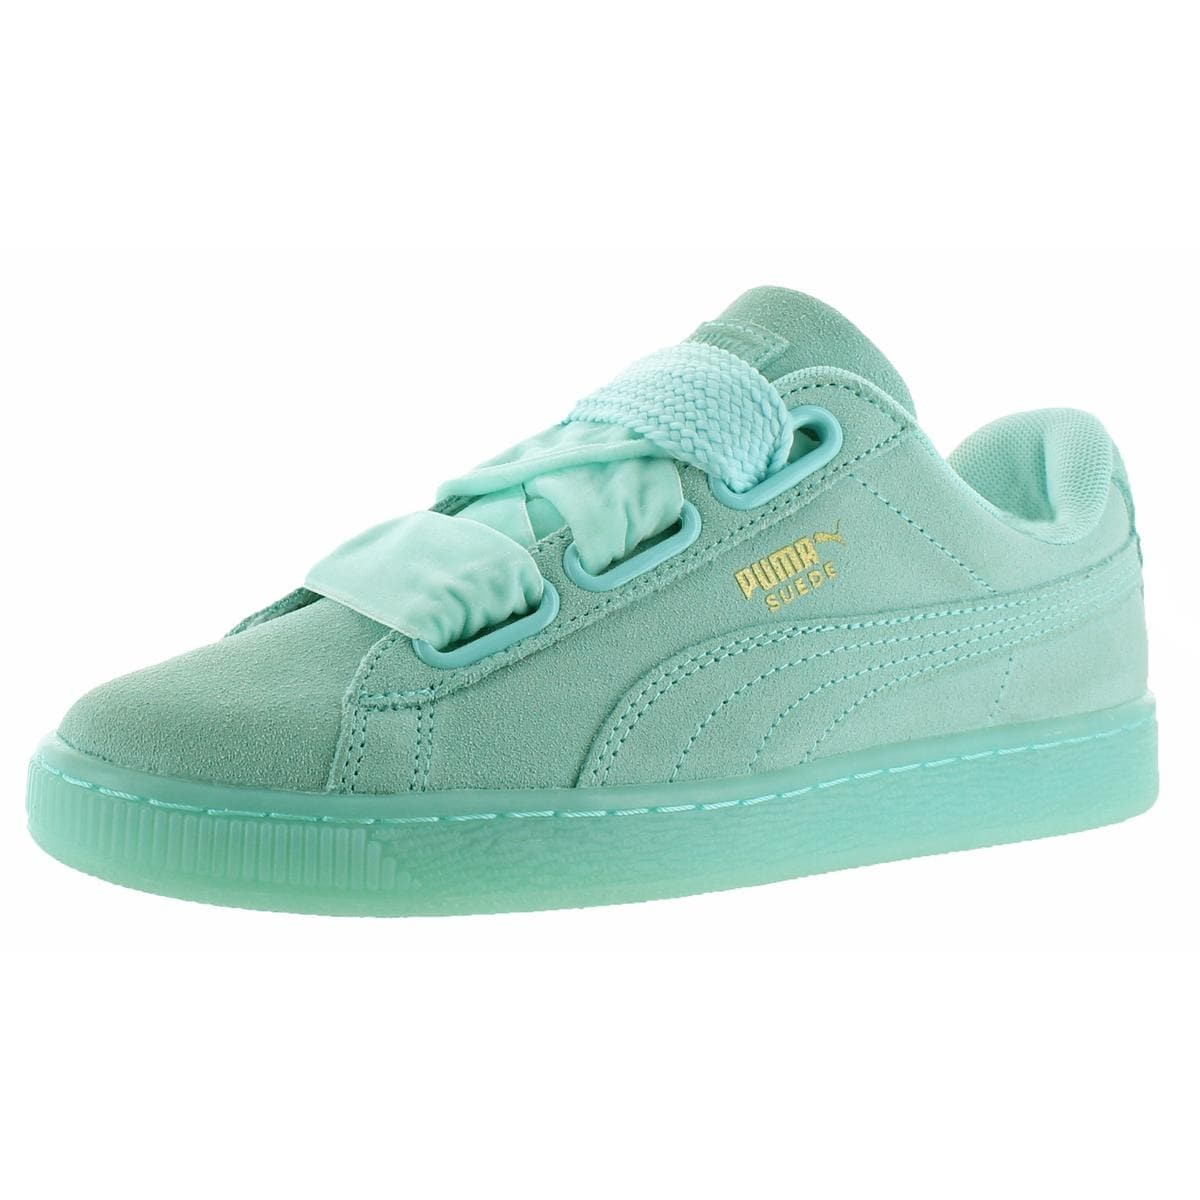 hot sale online a354e 5fcf2 Puma Womens Suede Heart Reset Fashion Sneakers Round Toe Casual